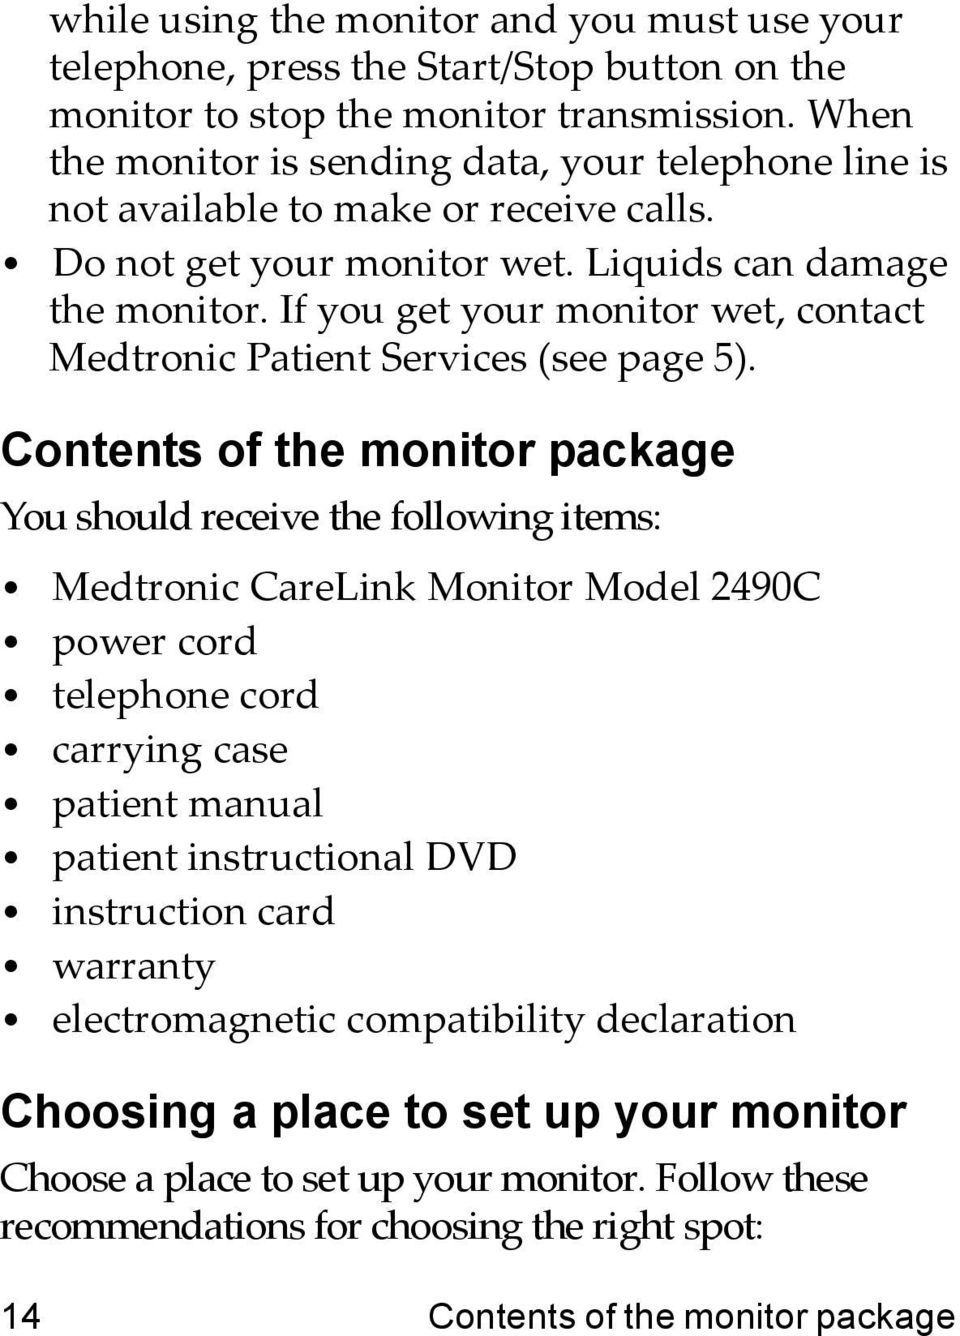 If you get your monitor wet, contact Medtronic Patient Services (see page 5).